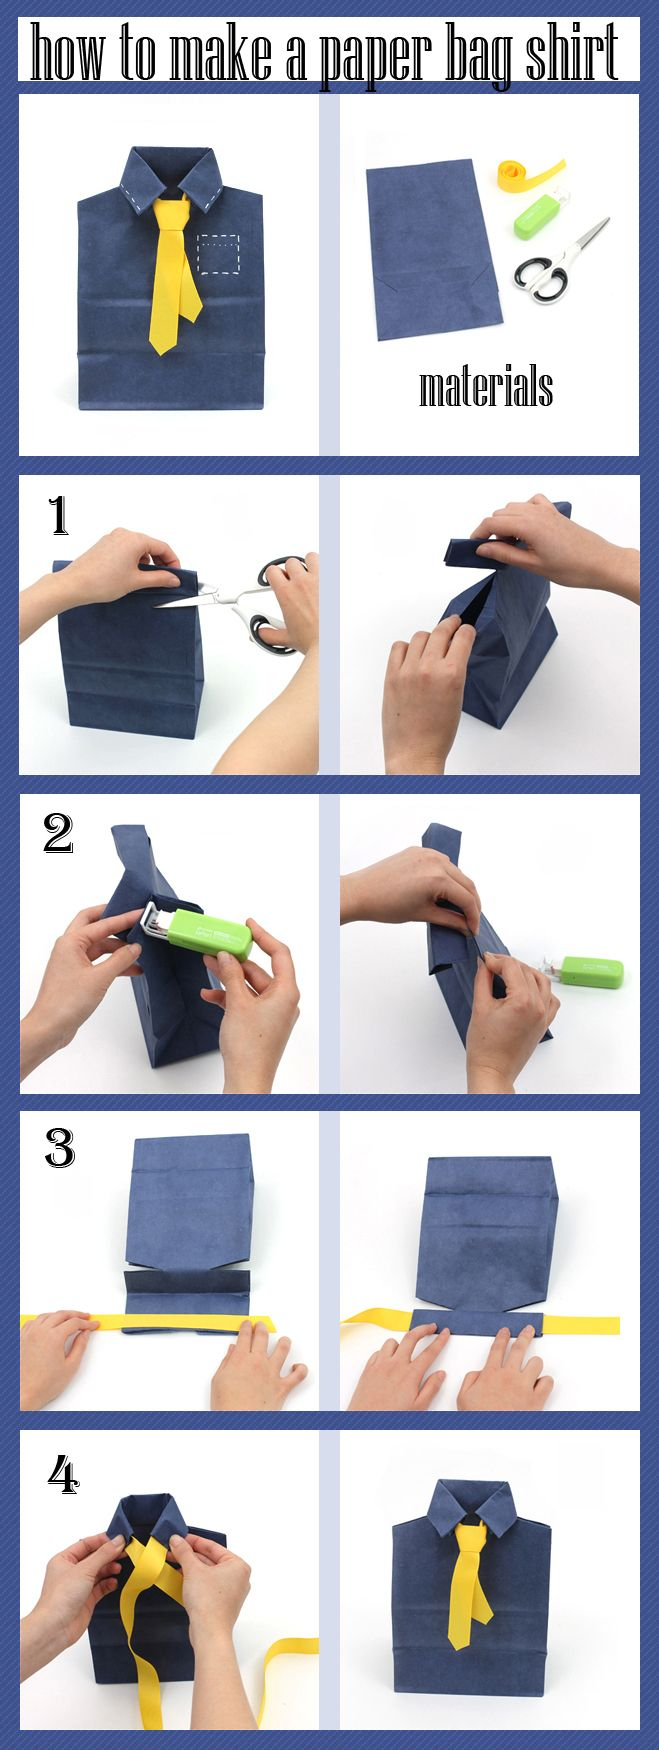 Make A Shirt And Tie With A Paper Bag For Detailed